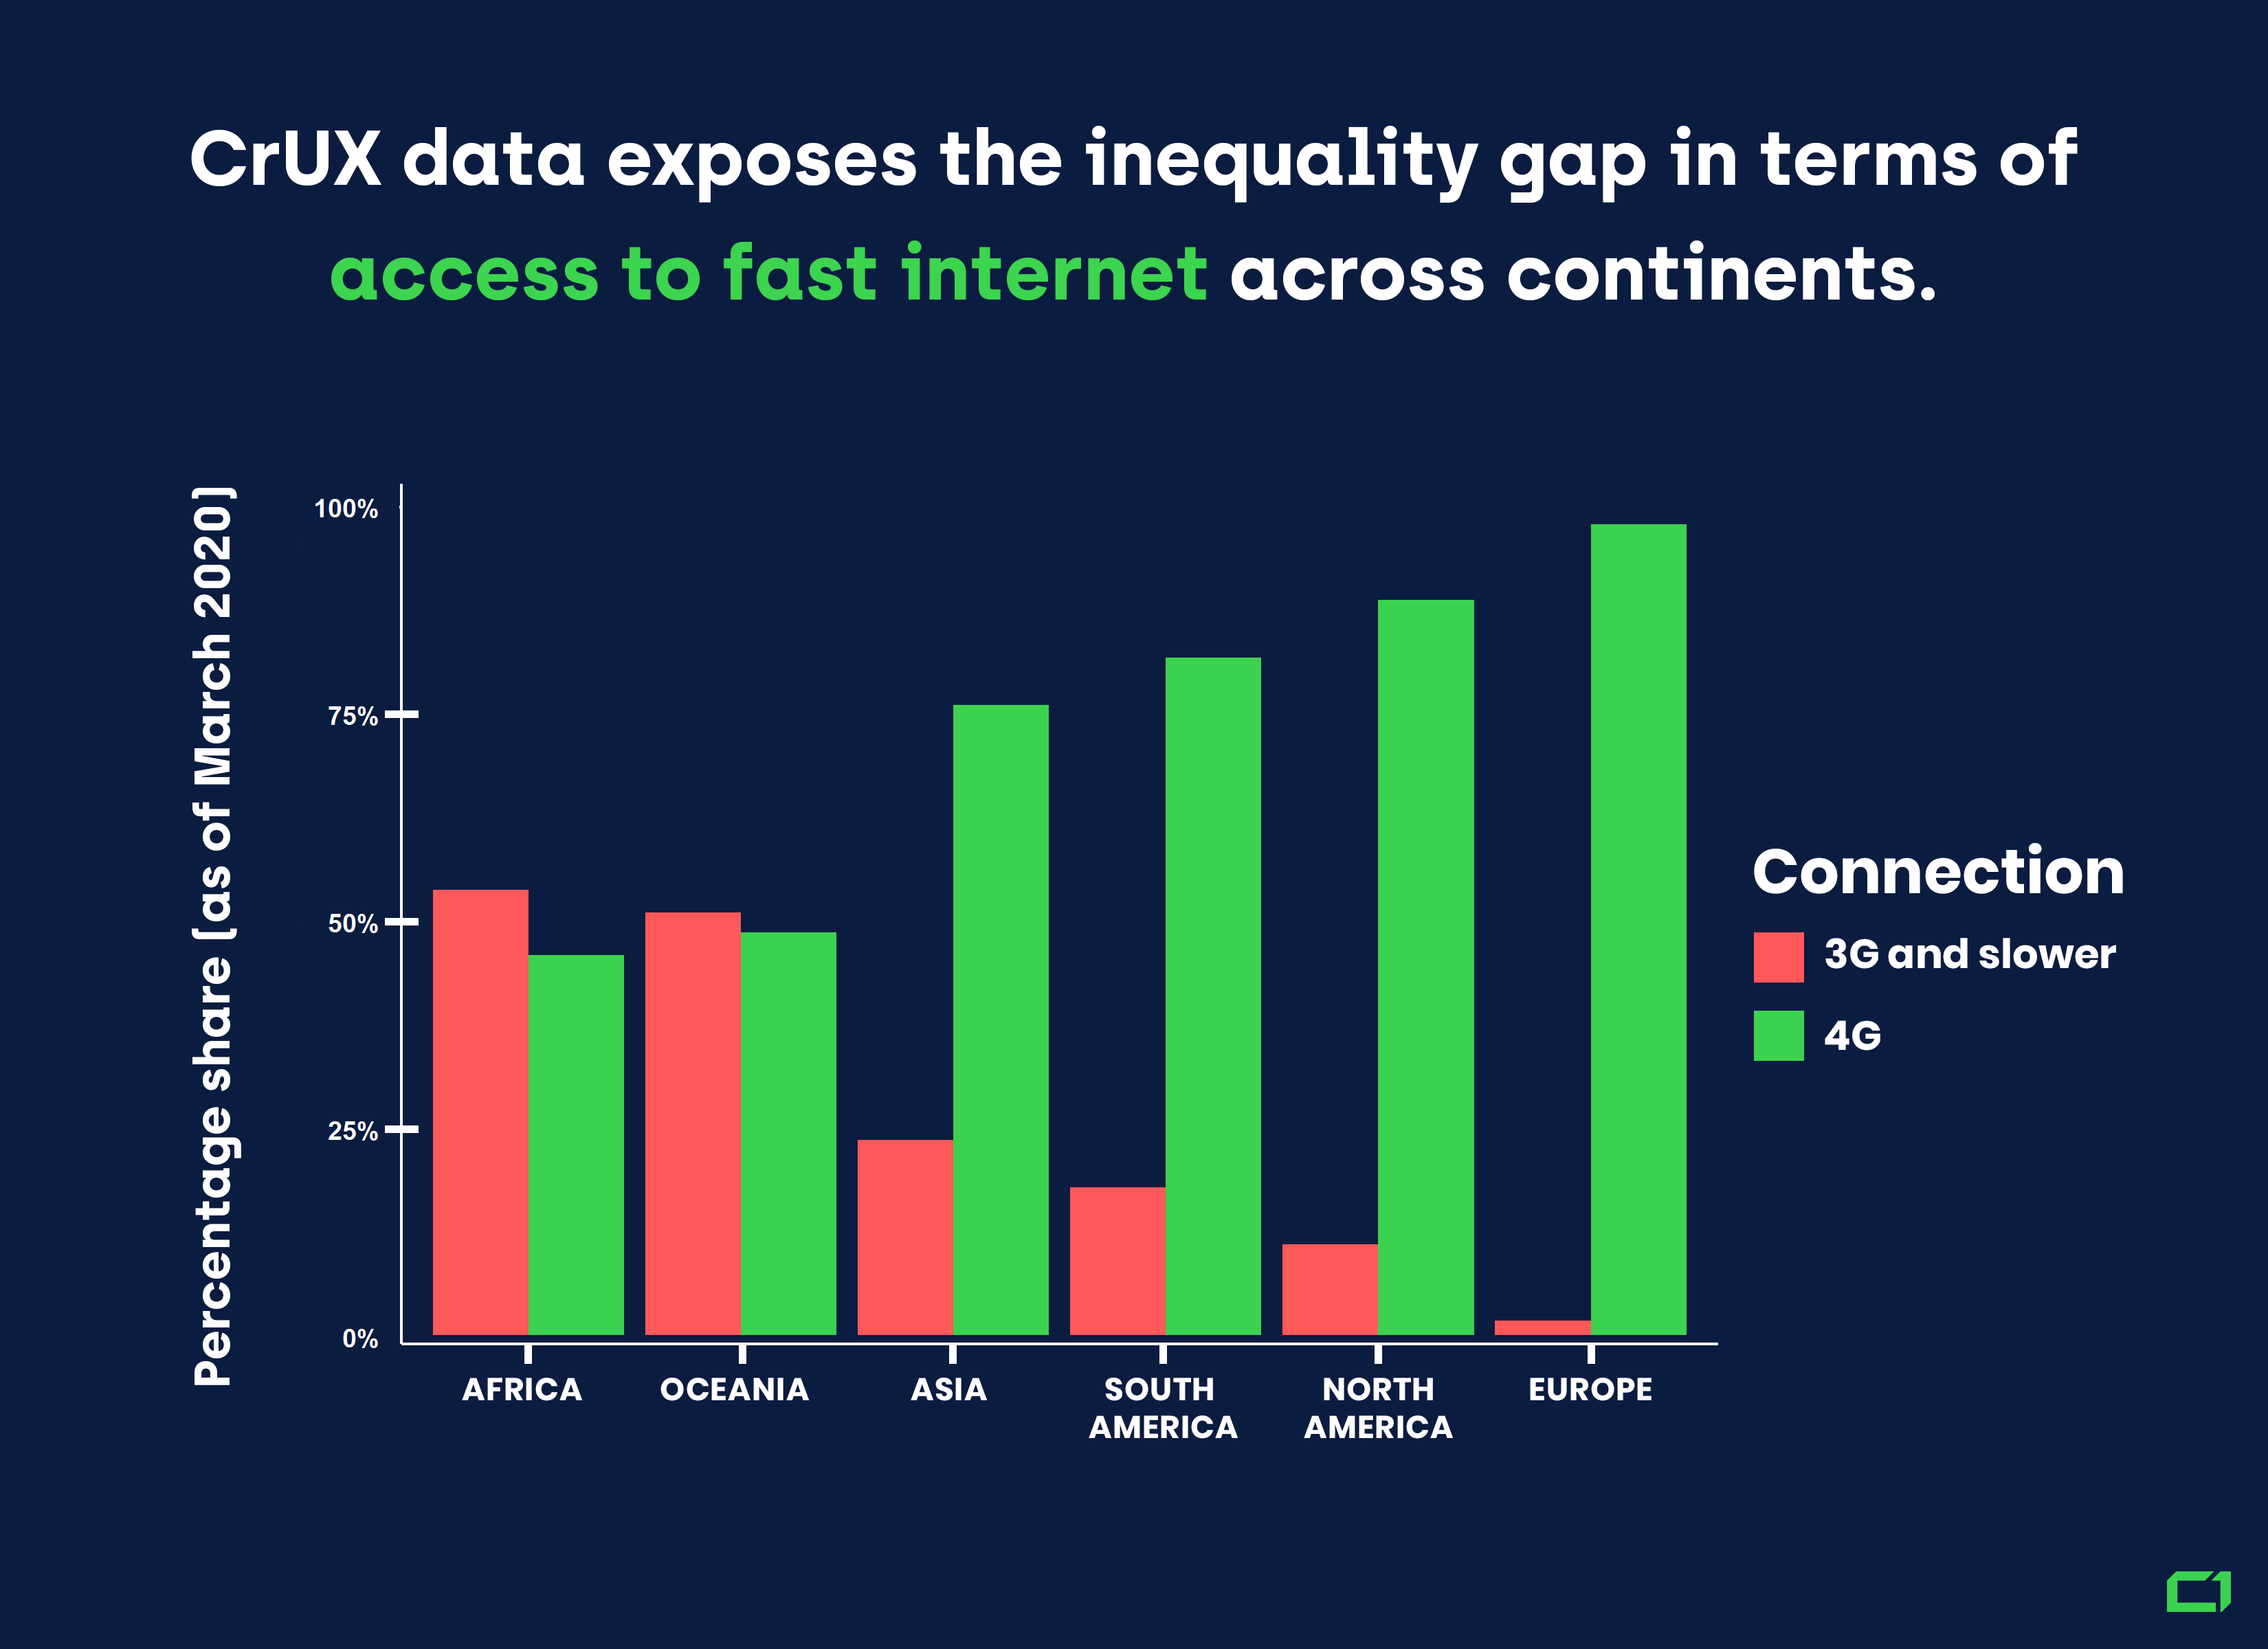 There are major inequalities in access to fast internet on various continents